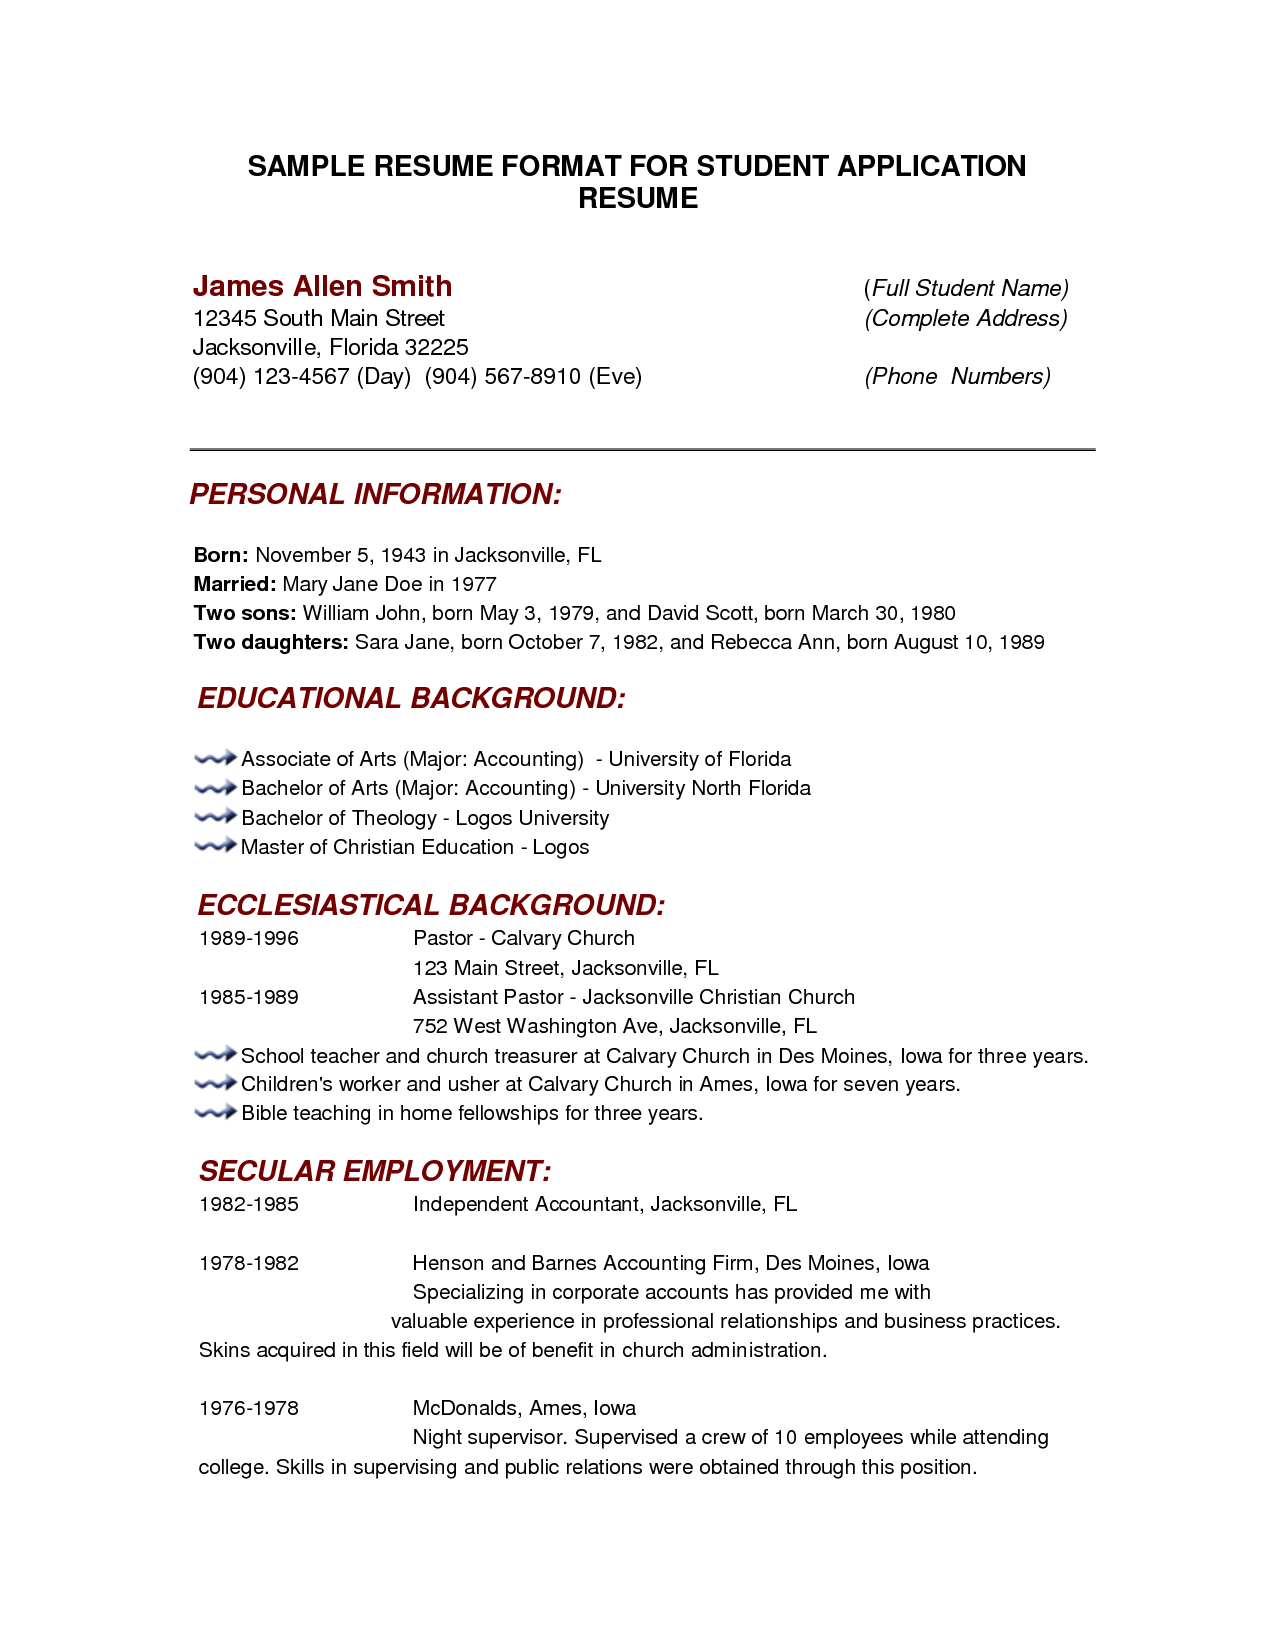 student resume format download